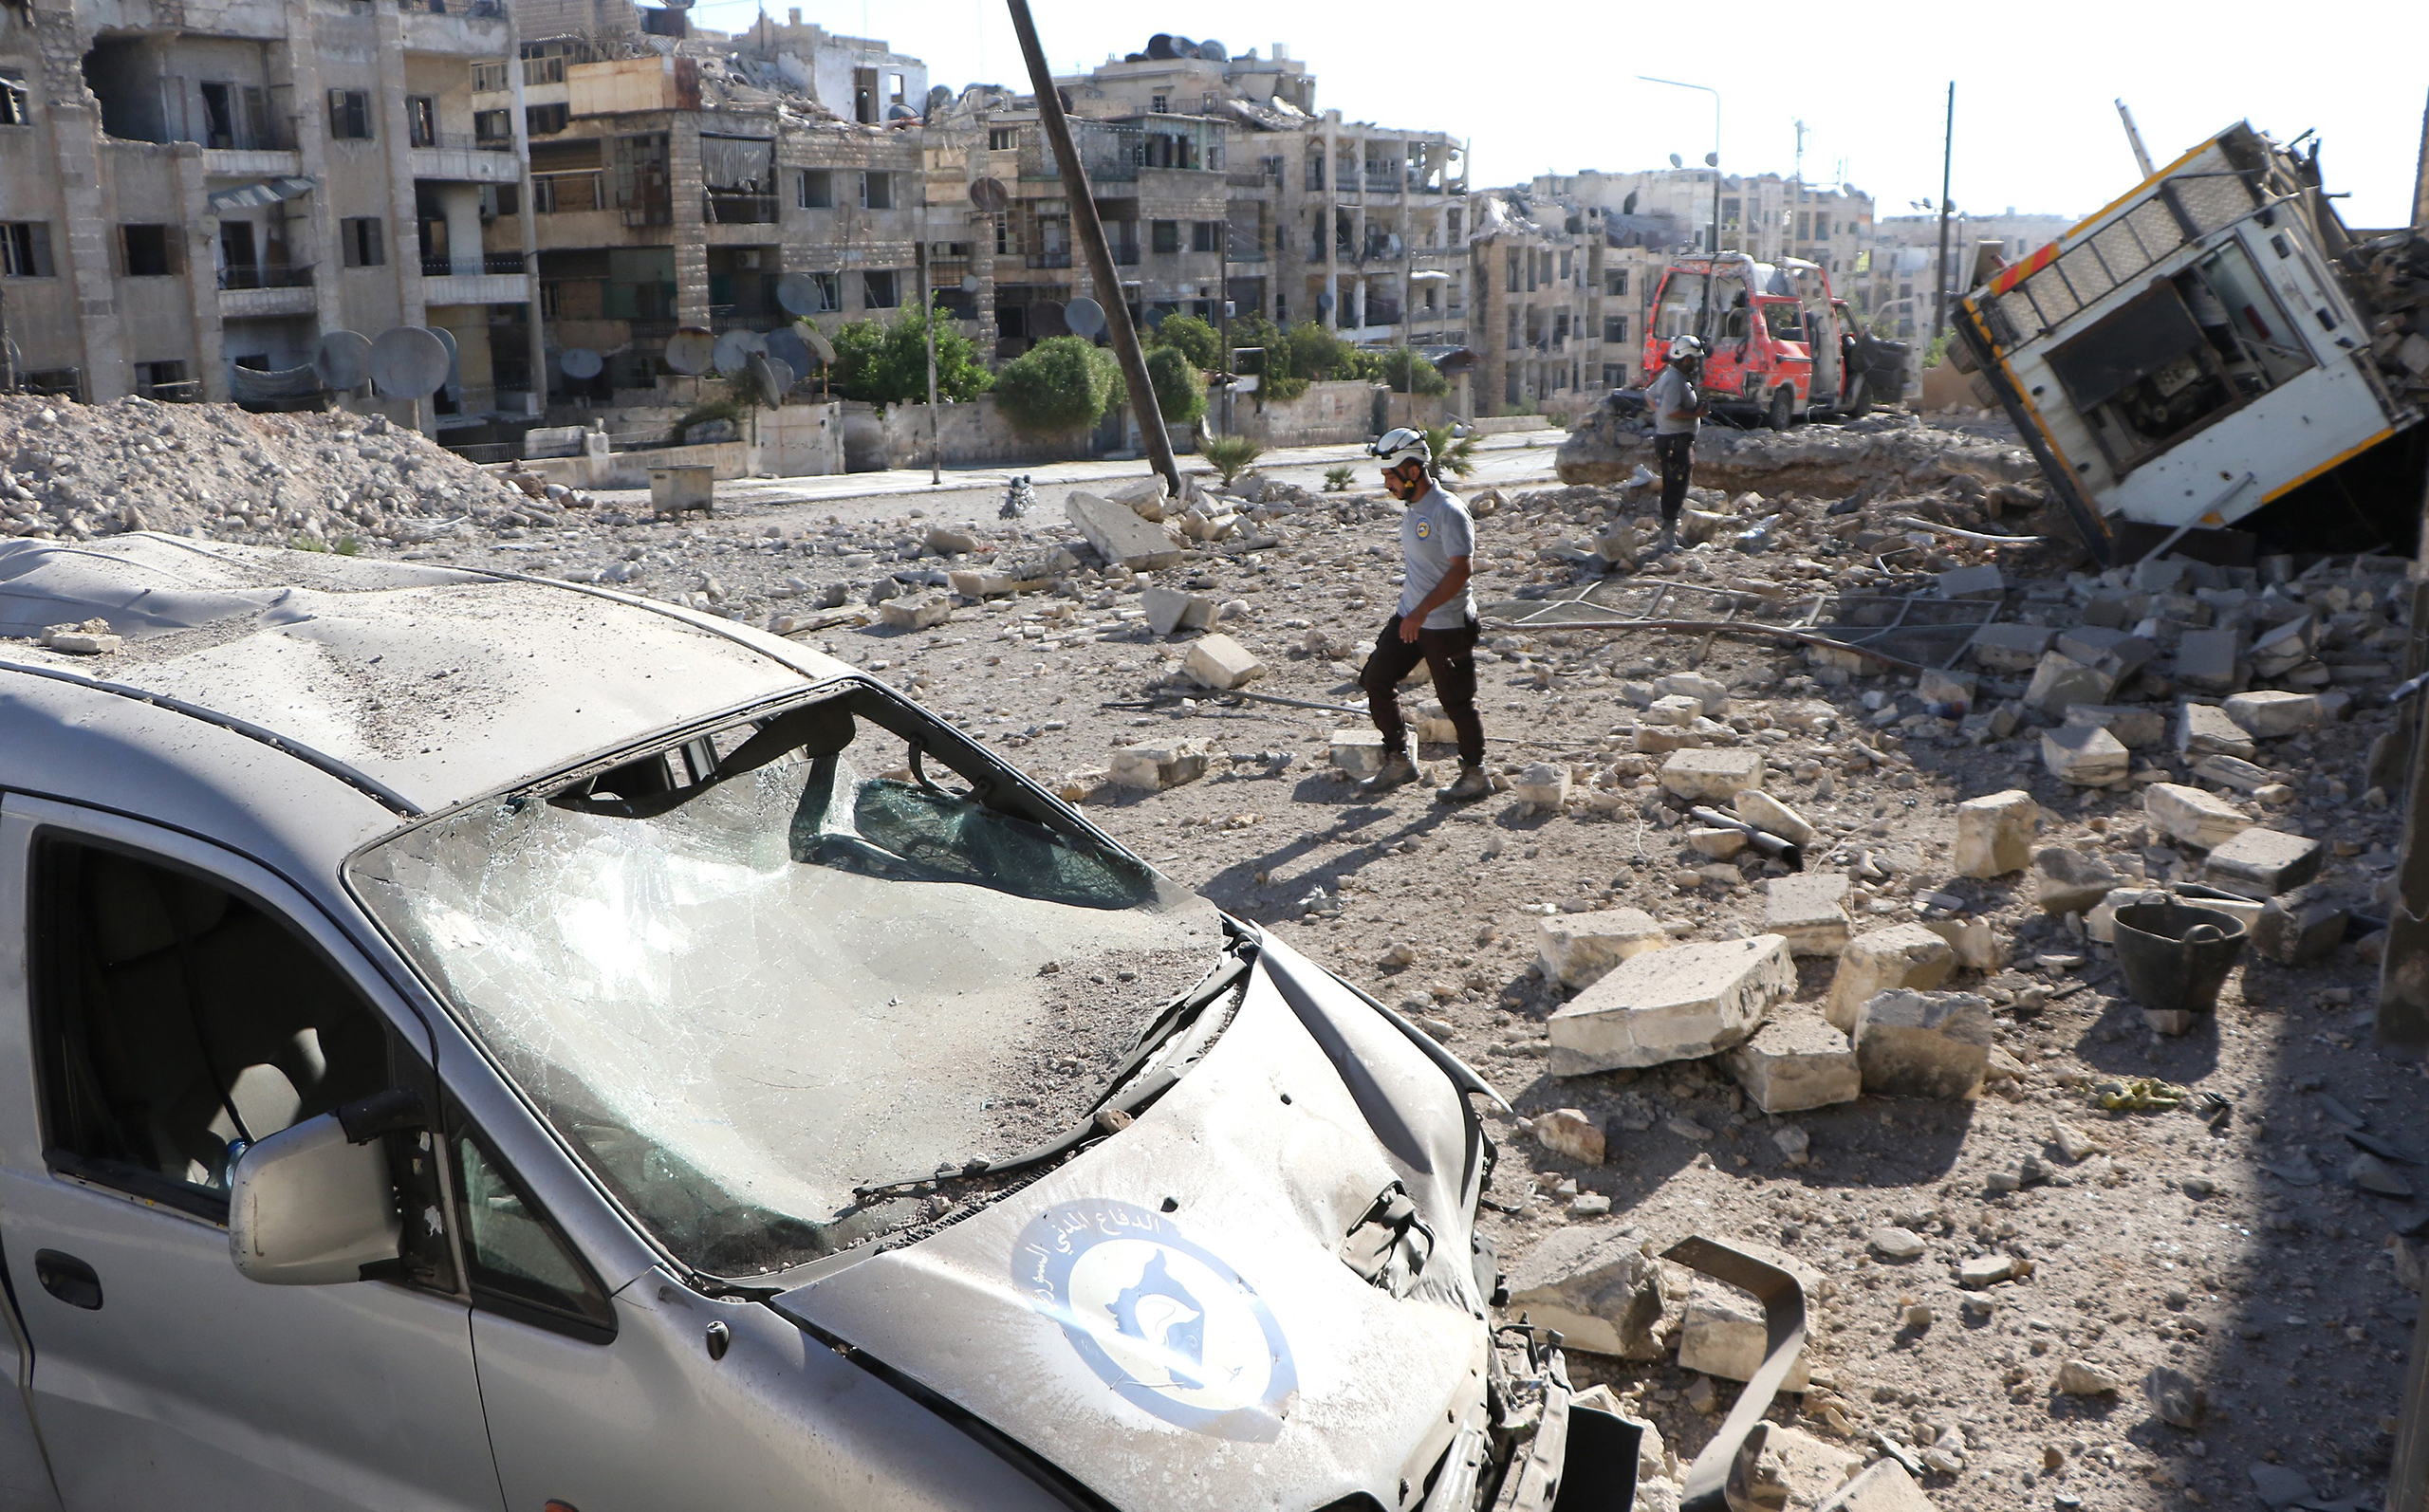 Debris of buildings and destroyed vehicles are seen after suspected Russian warplanes hit the civil defense center at Al-Ansari, in the rebel-held section of Aleppo, Syria, on Sept. 23, 2016.